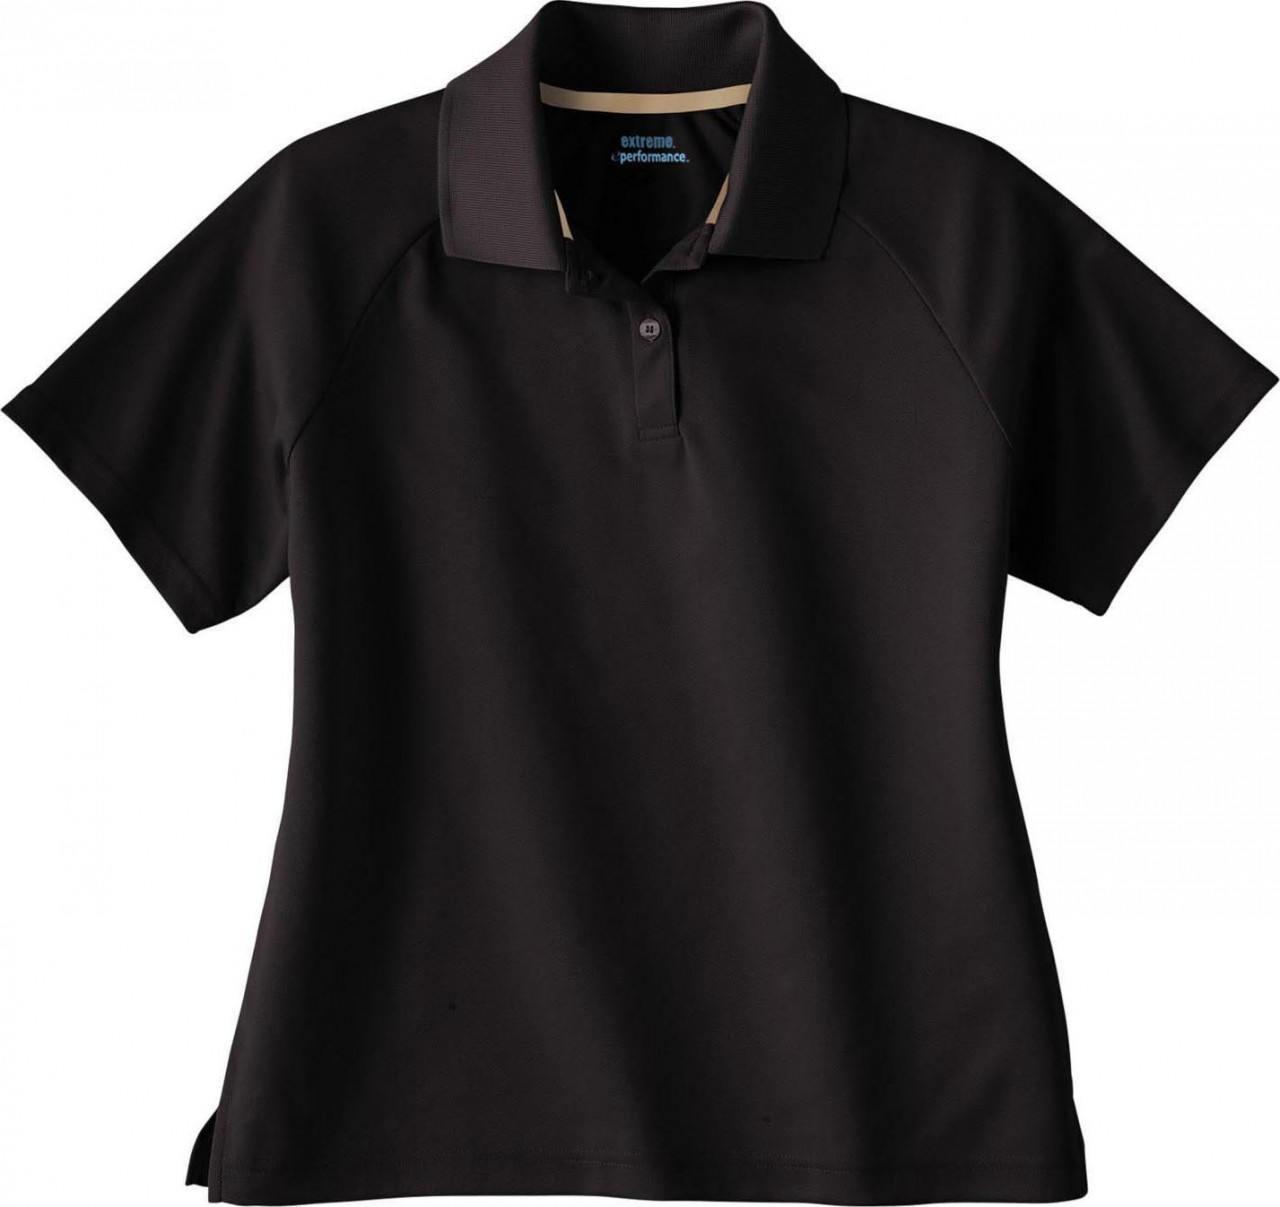 Black - 75046 Extreme Ladies' Eperformance Pique Polo Shirt | BlankClothing.ca